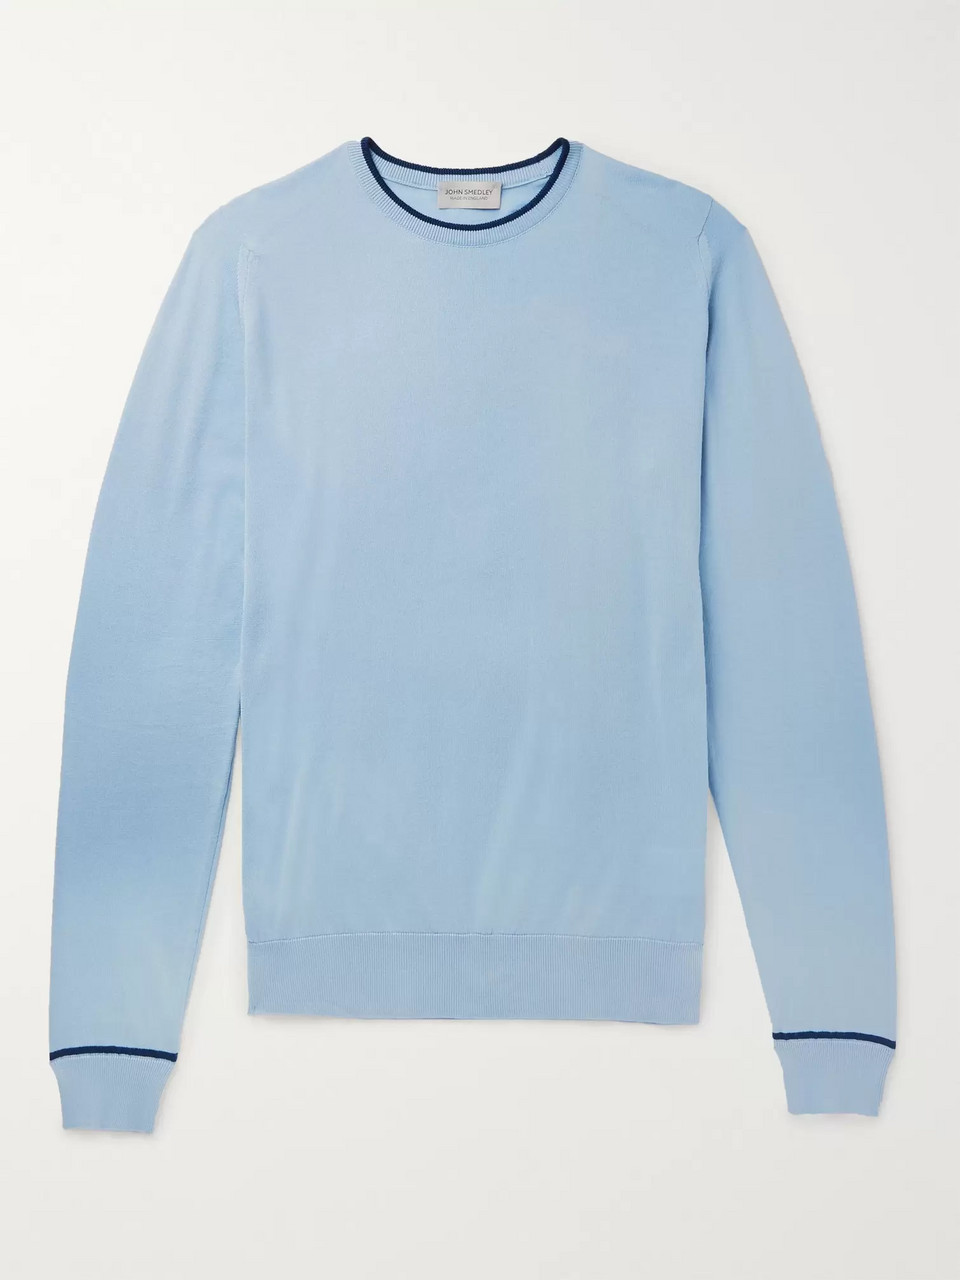 John Smedley Contrast-Tipped Sea Island Cotton Sweater